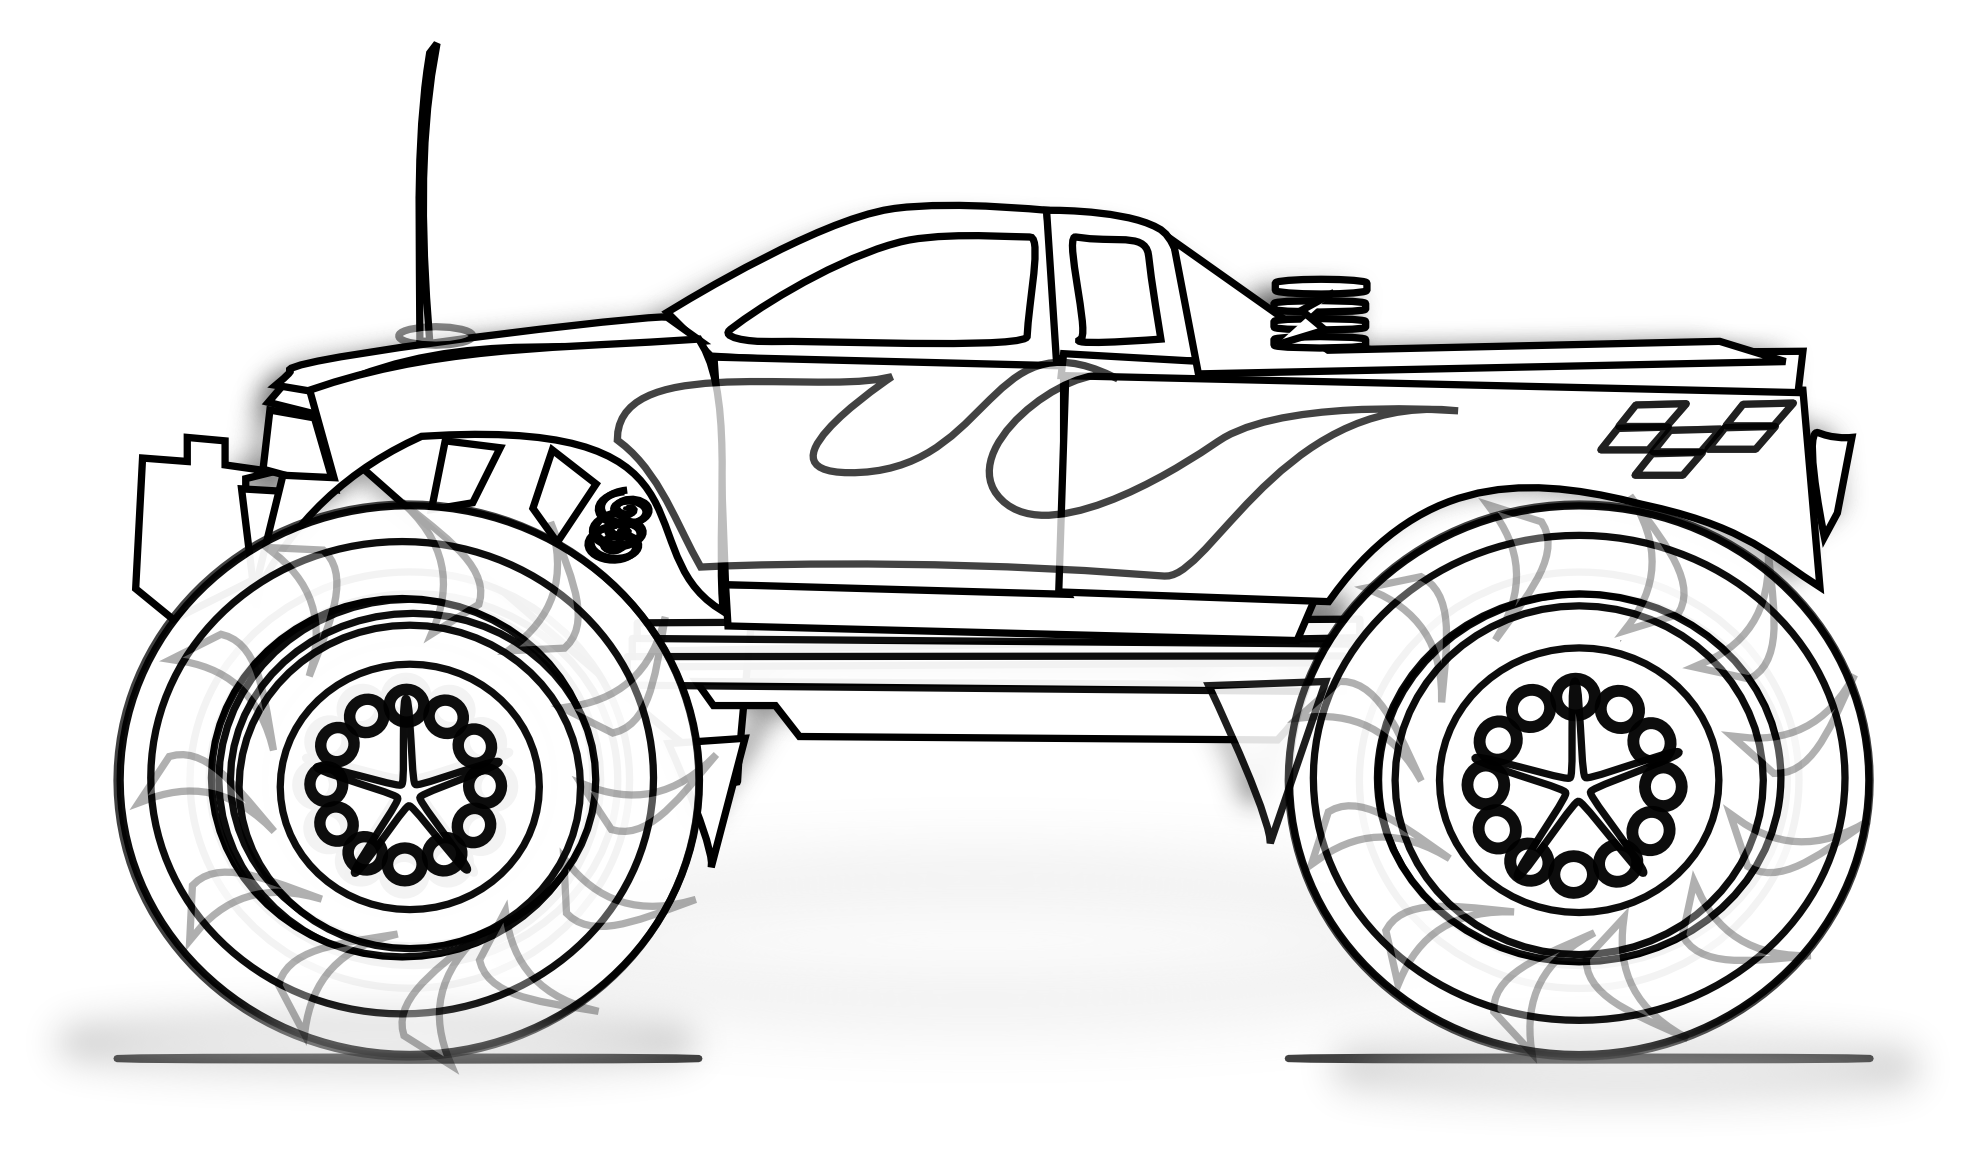 monstor truck coloring pages Free Printable Monster Truck Coloring Pages For Kids | Birthday  monstor truck coloring pages